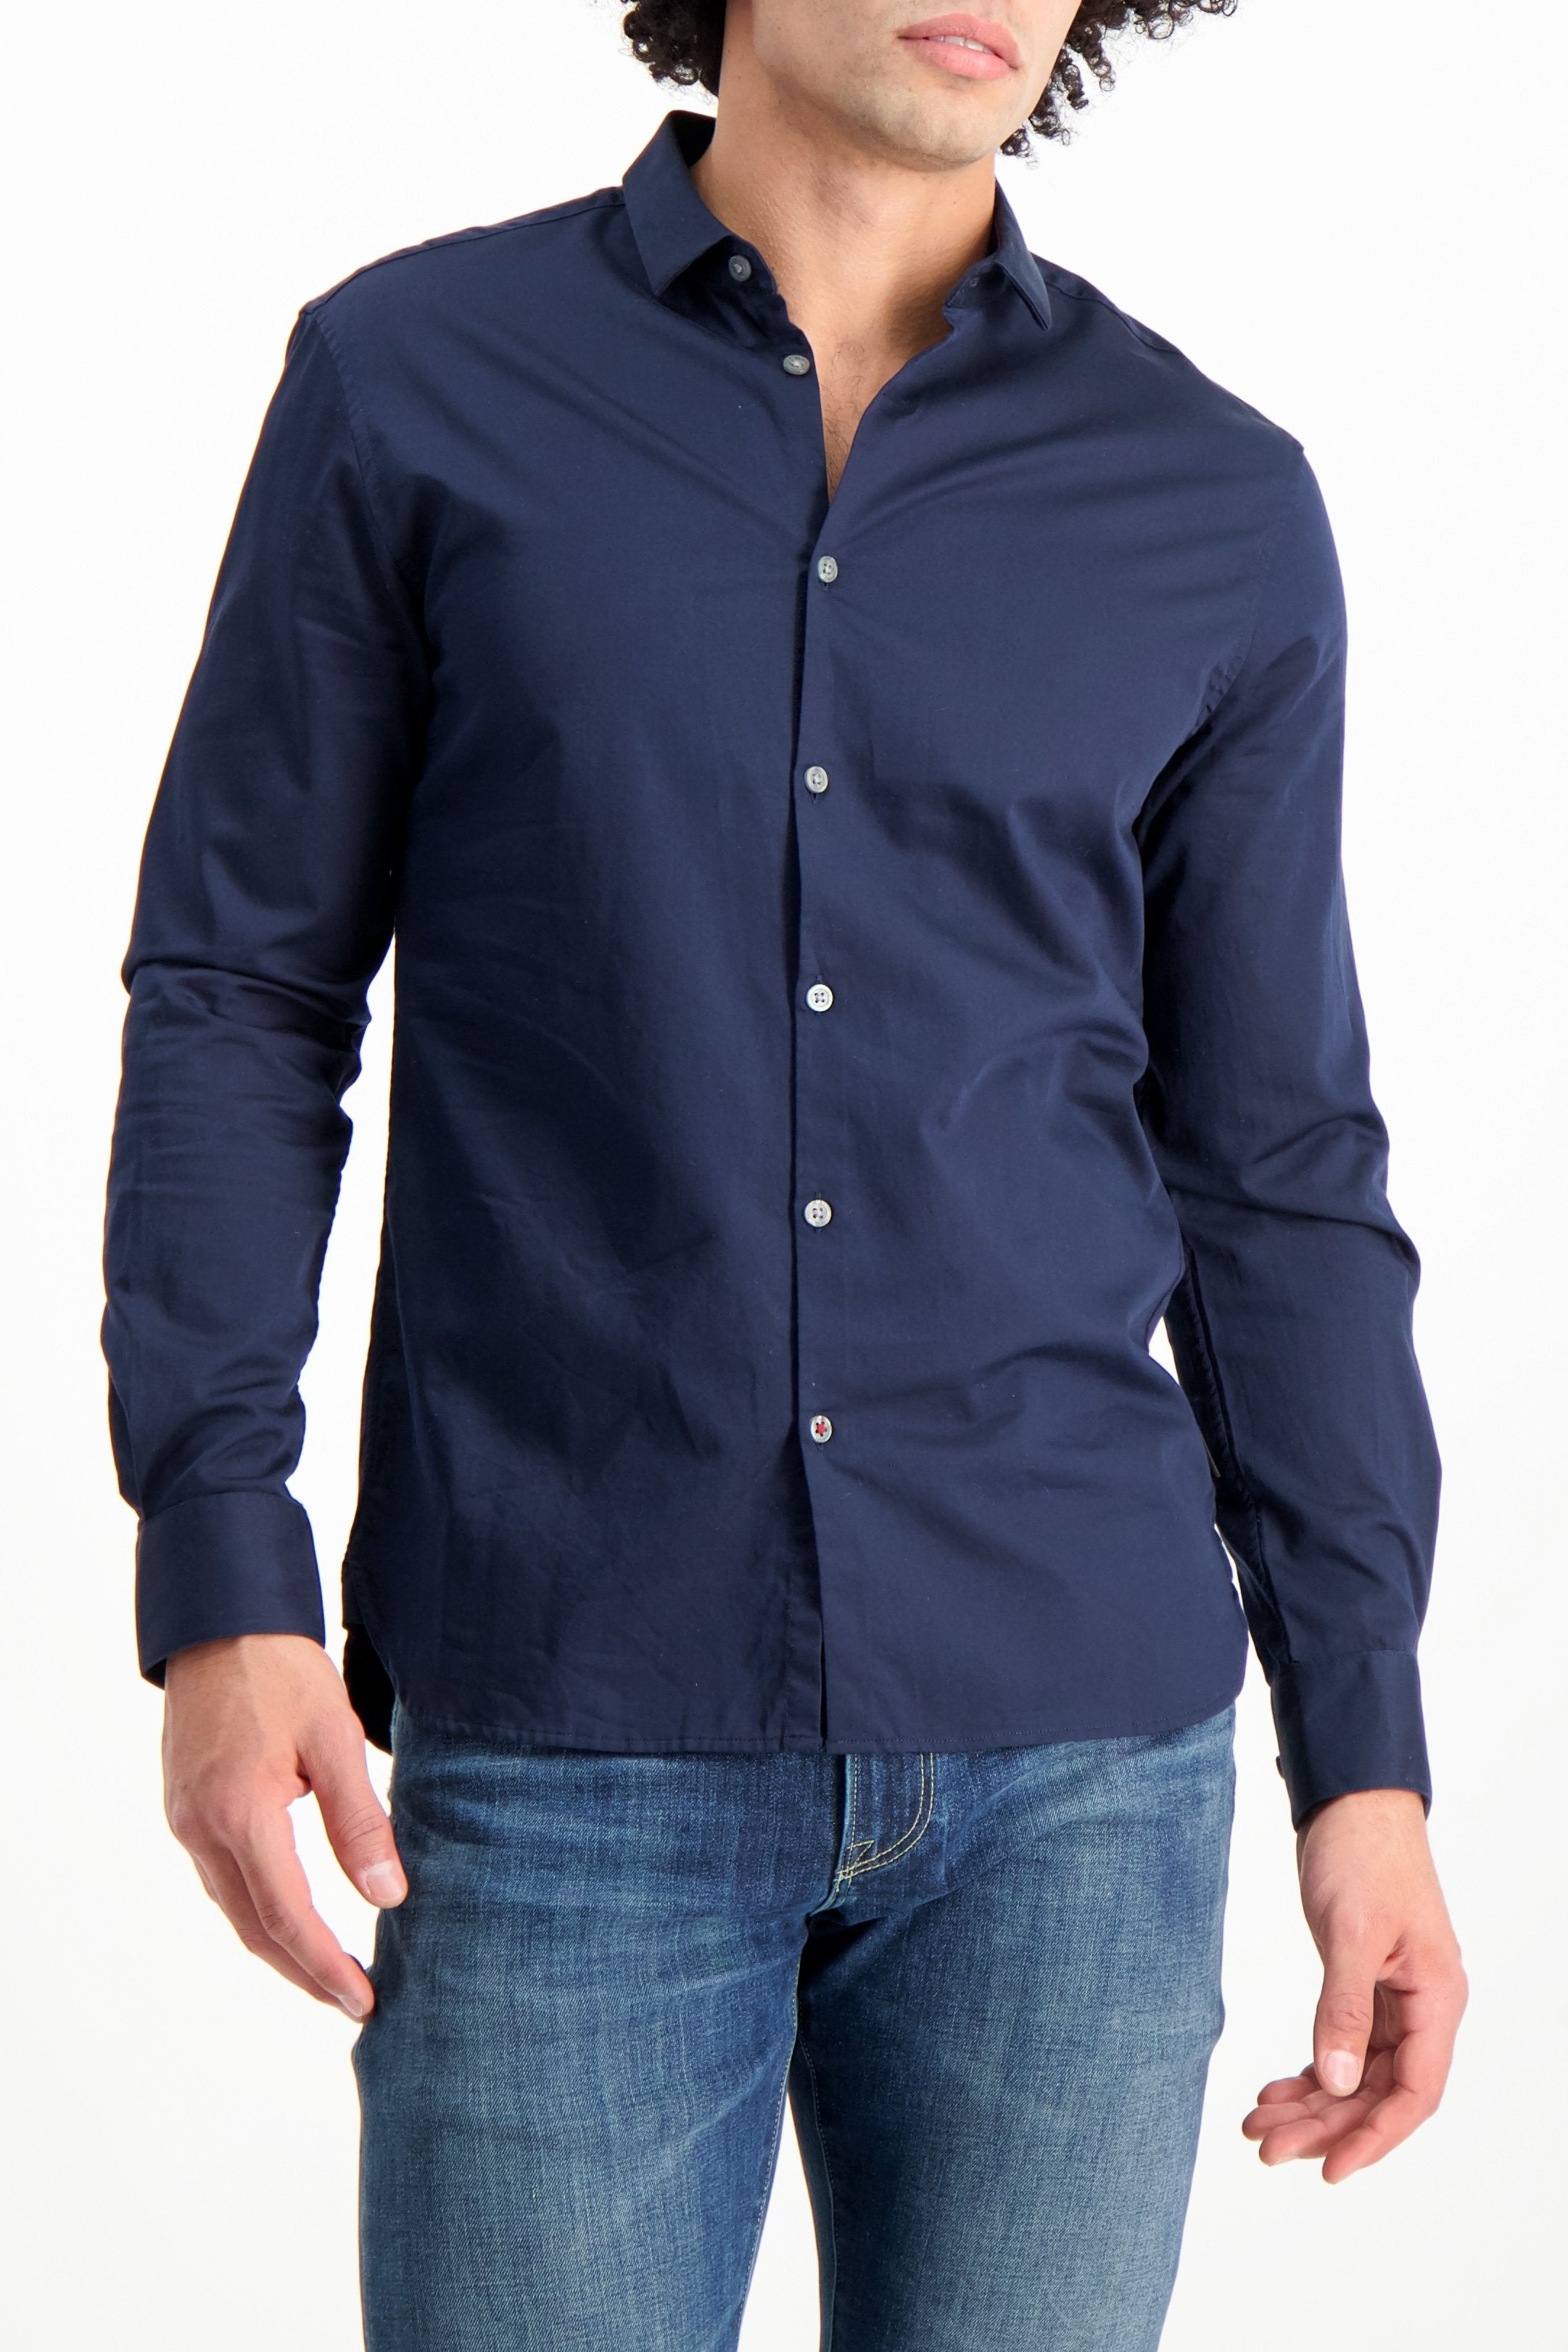 Front Crop Image Of Model Wearing JV Star USA Men's Ross Bluff Edge Sport Shirt Navy